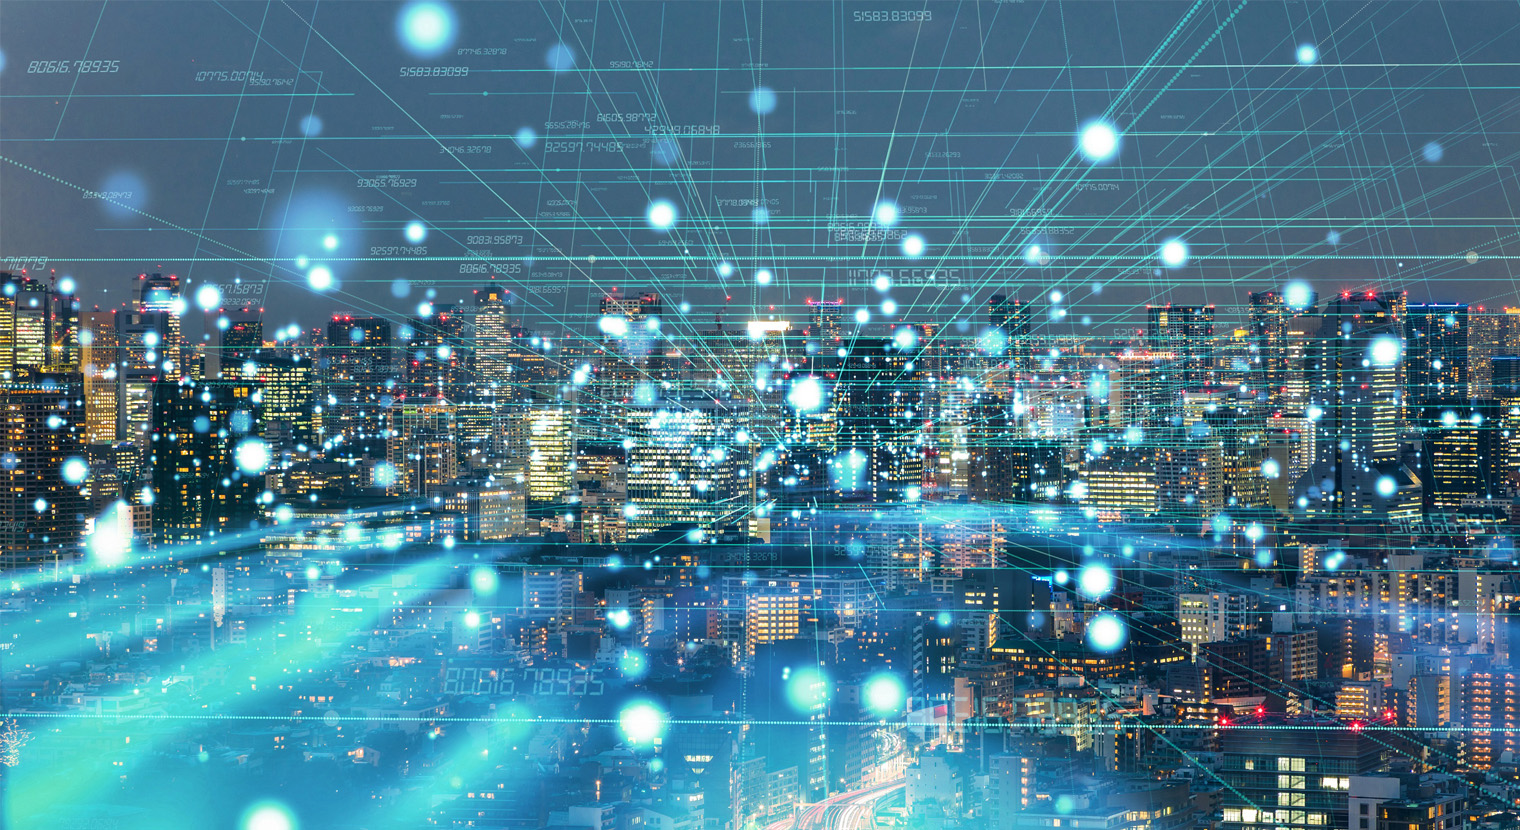 Smart-cities' high-tech future